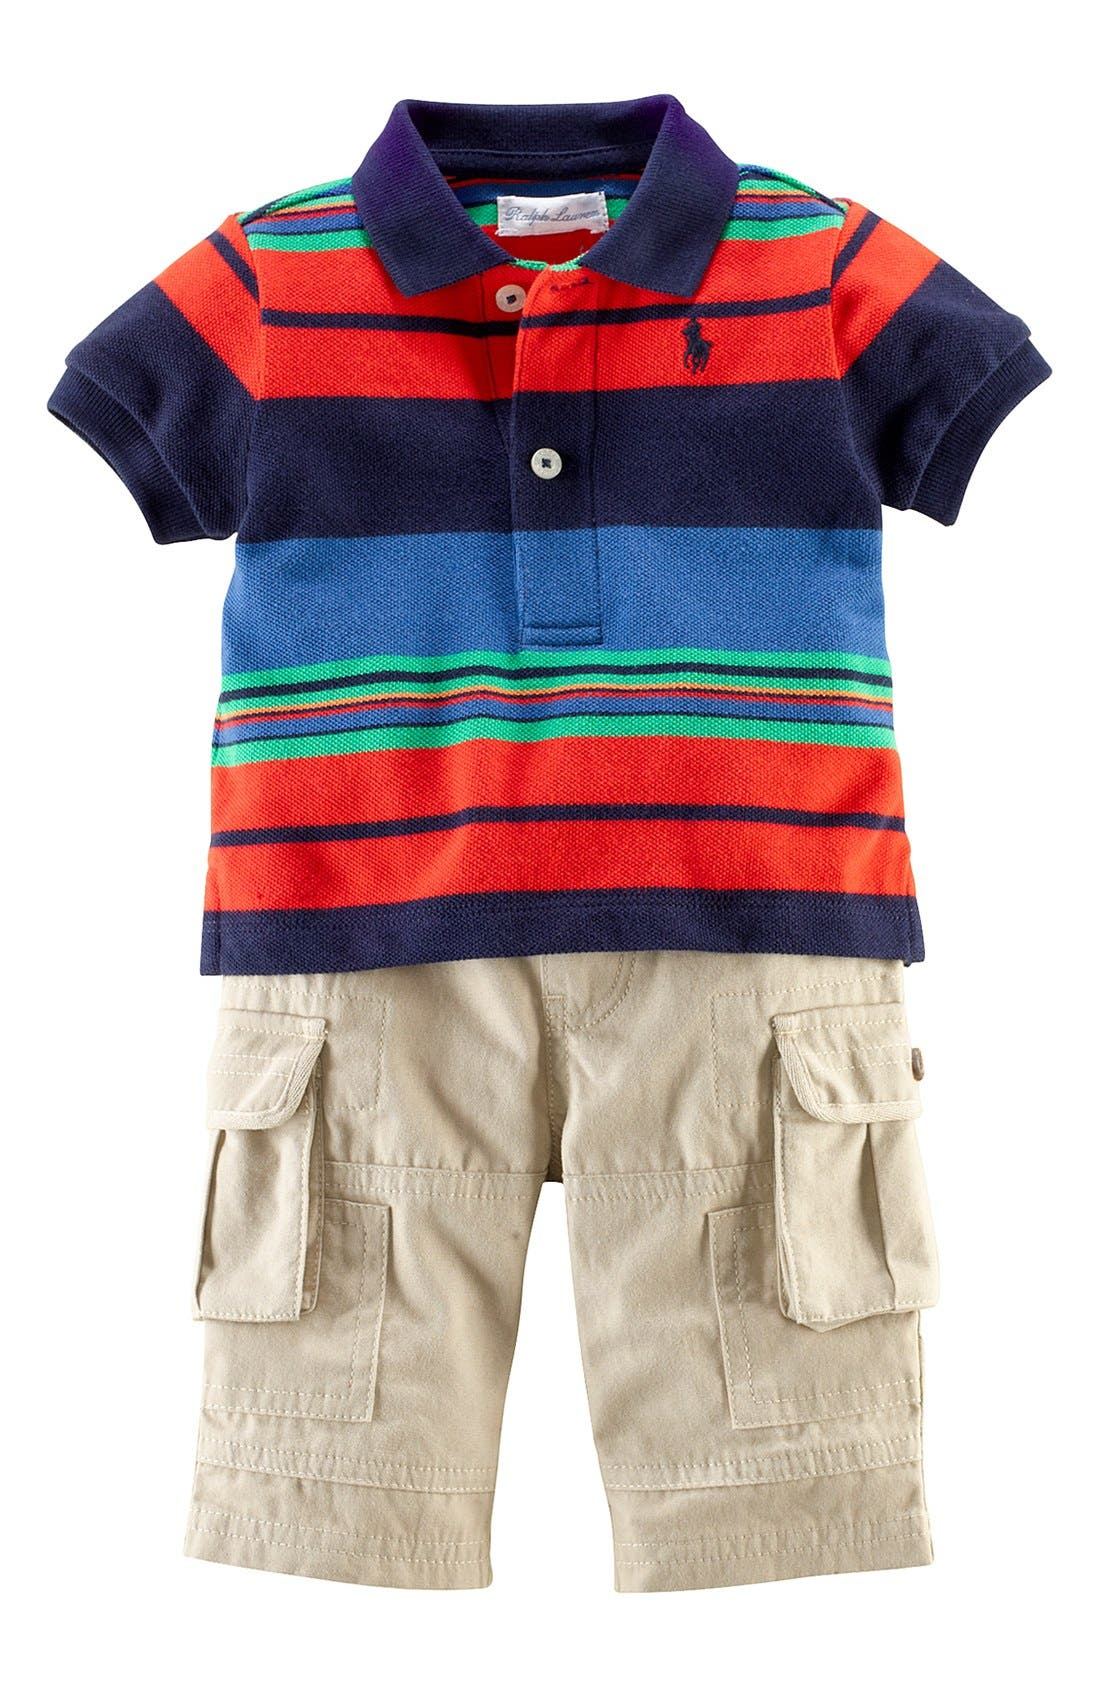 Main Image - Ralph Lauren Polo & Cargo Pants (Baby Boys)